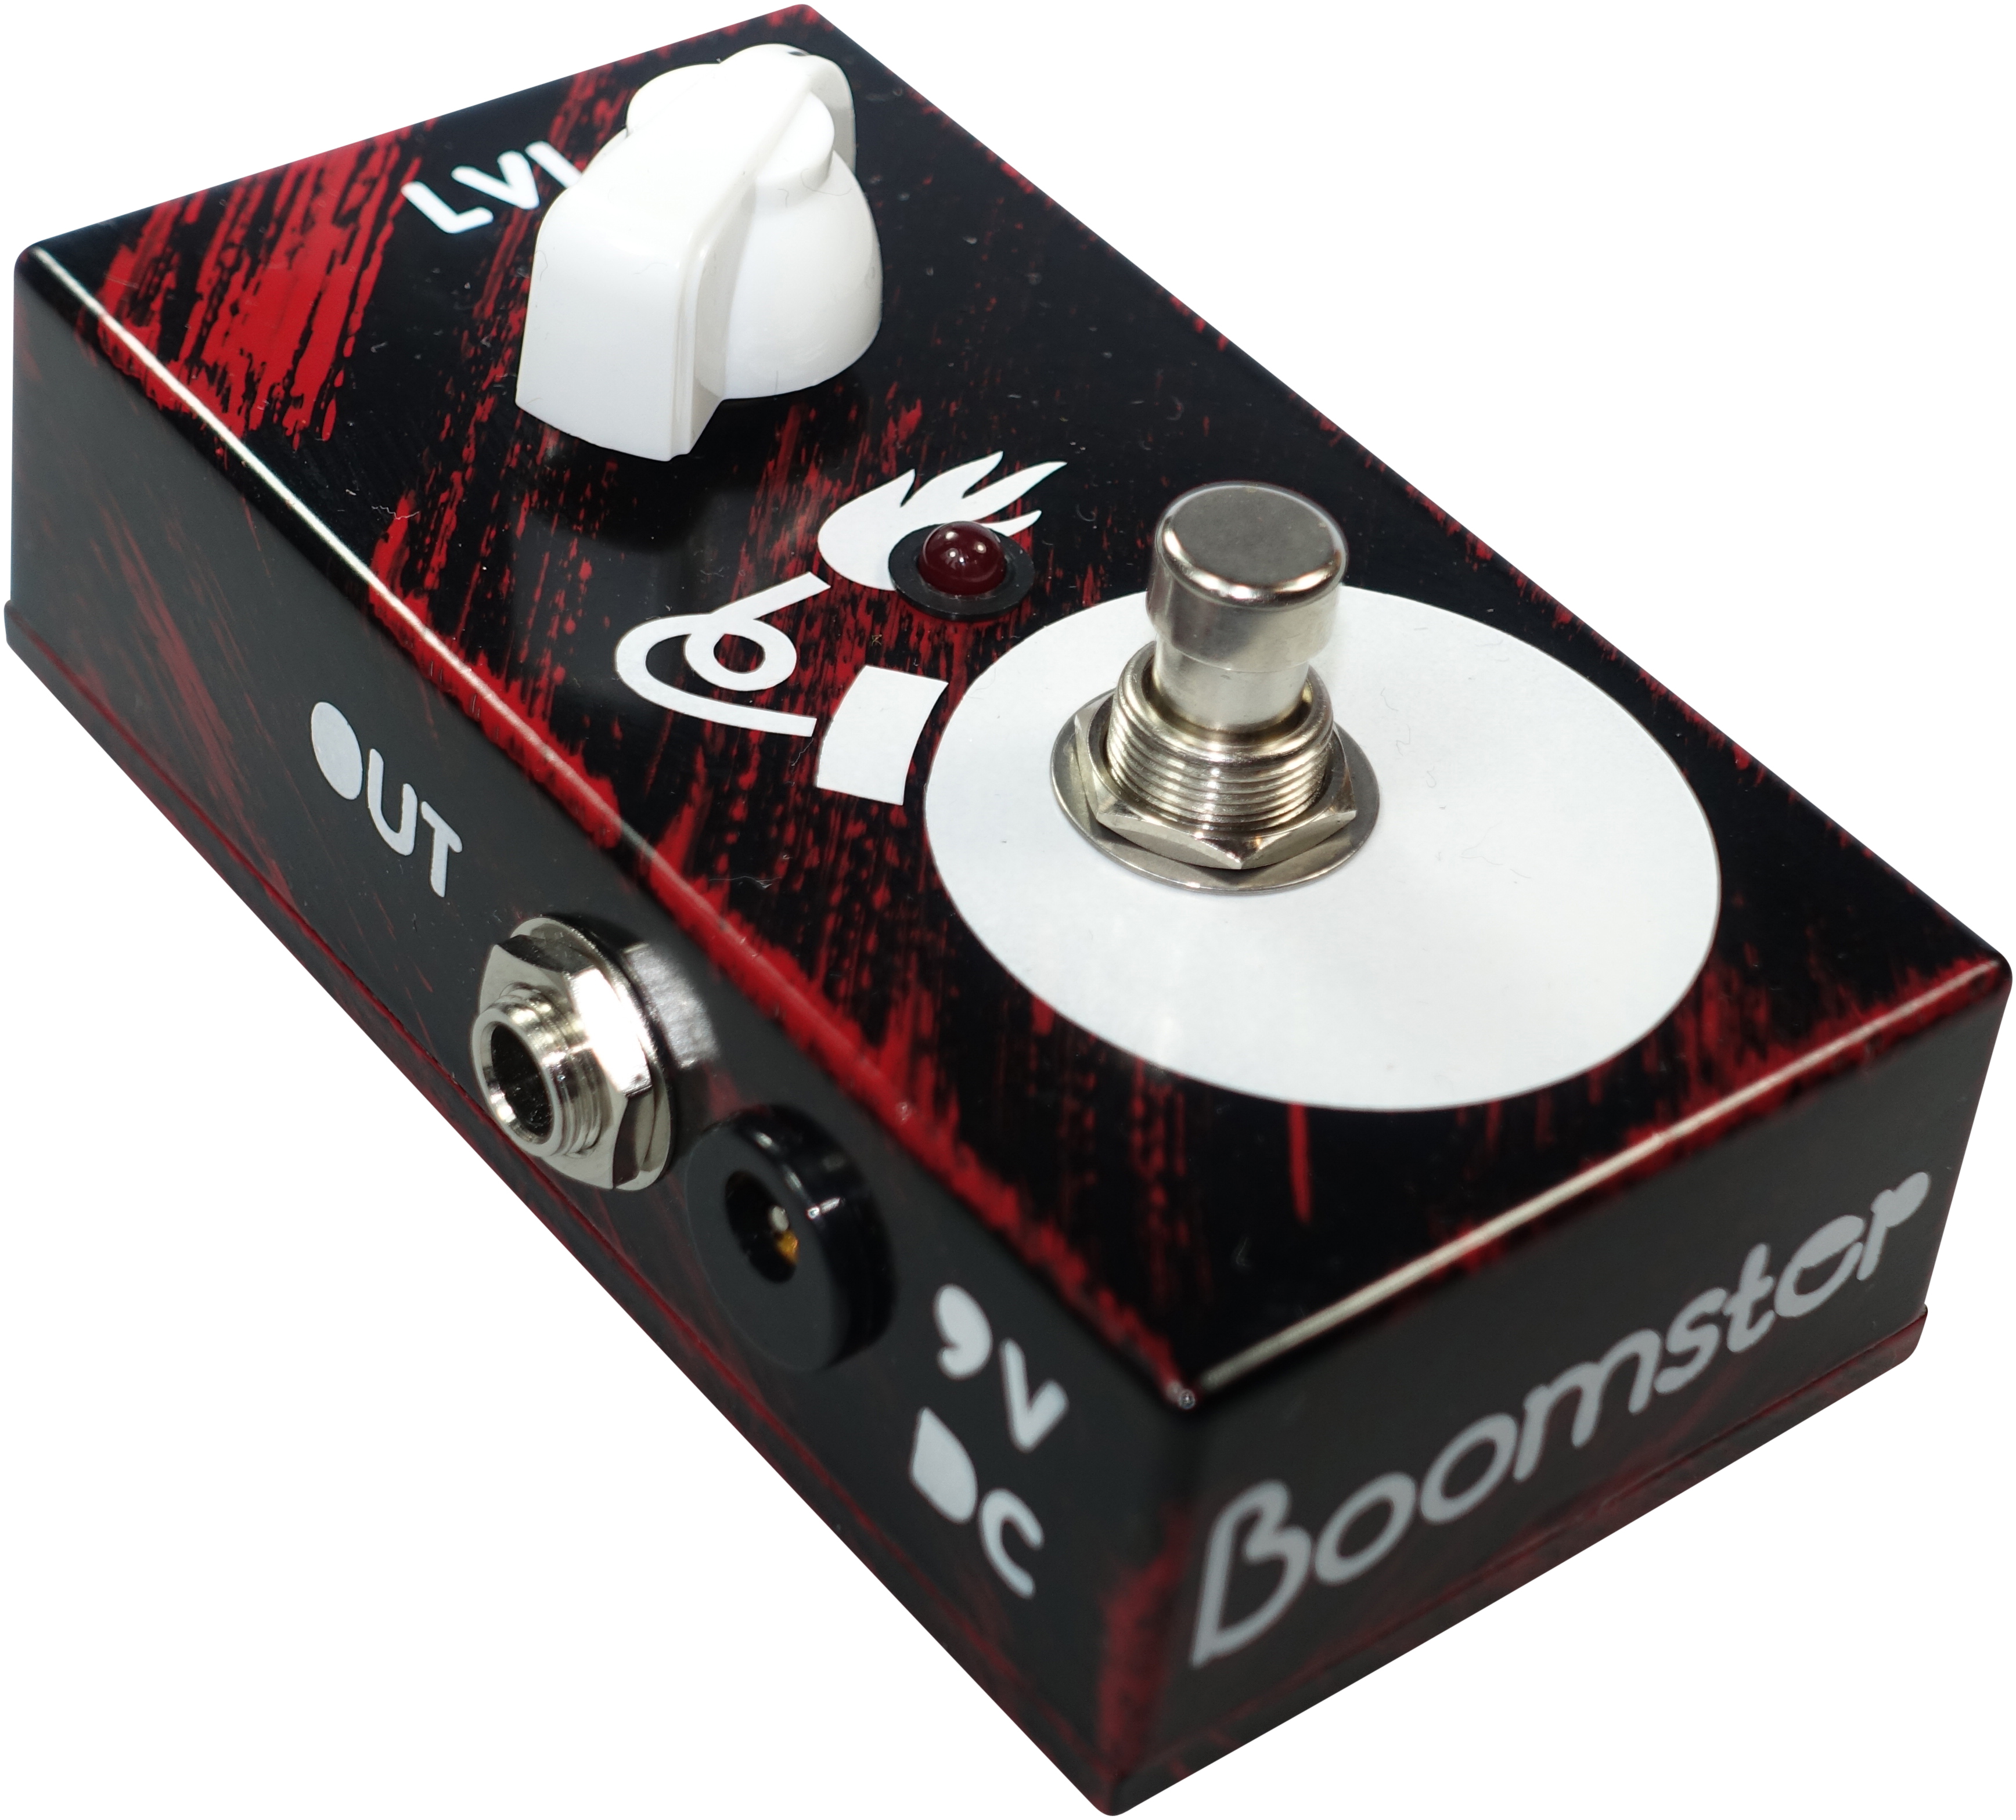 JAM Pedals Boomster